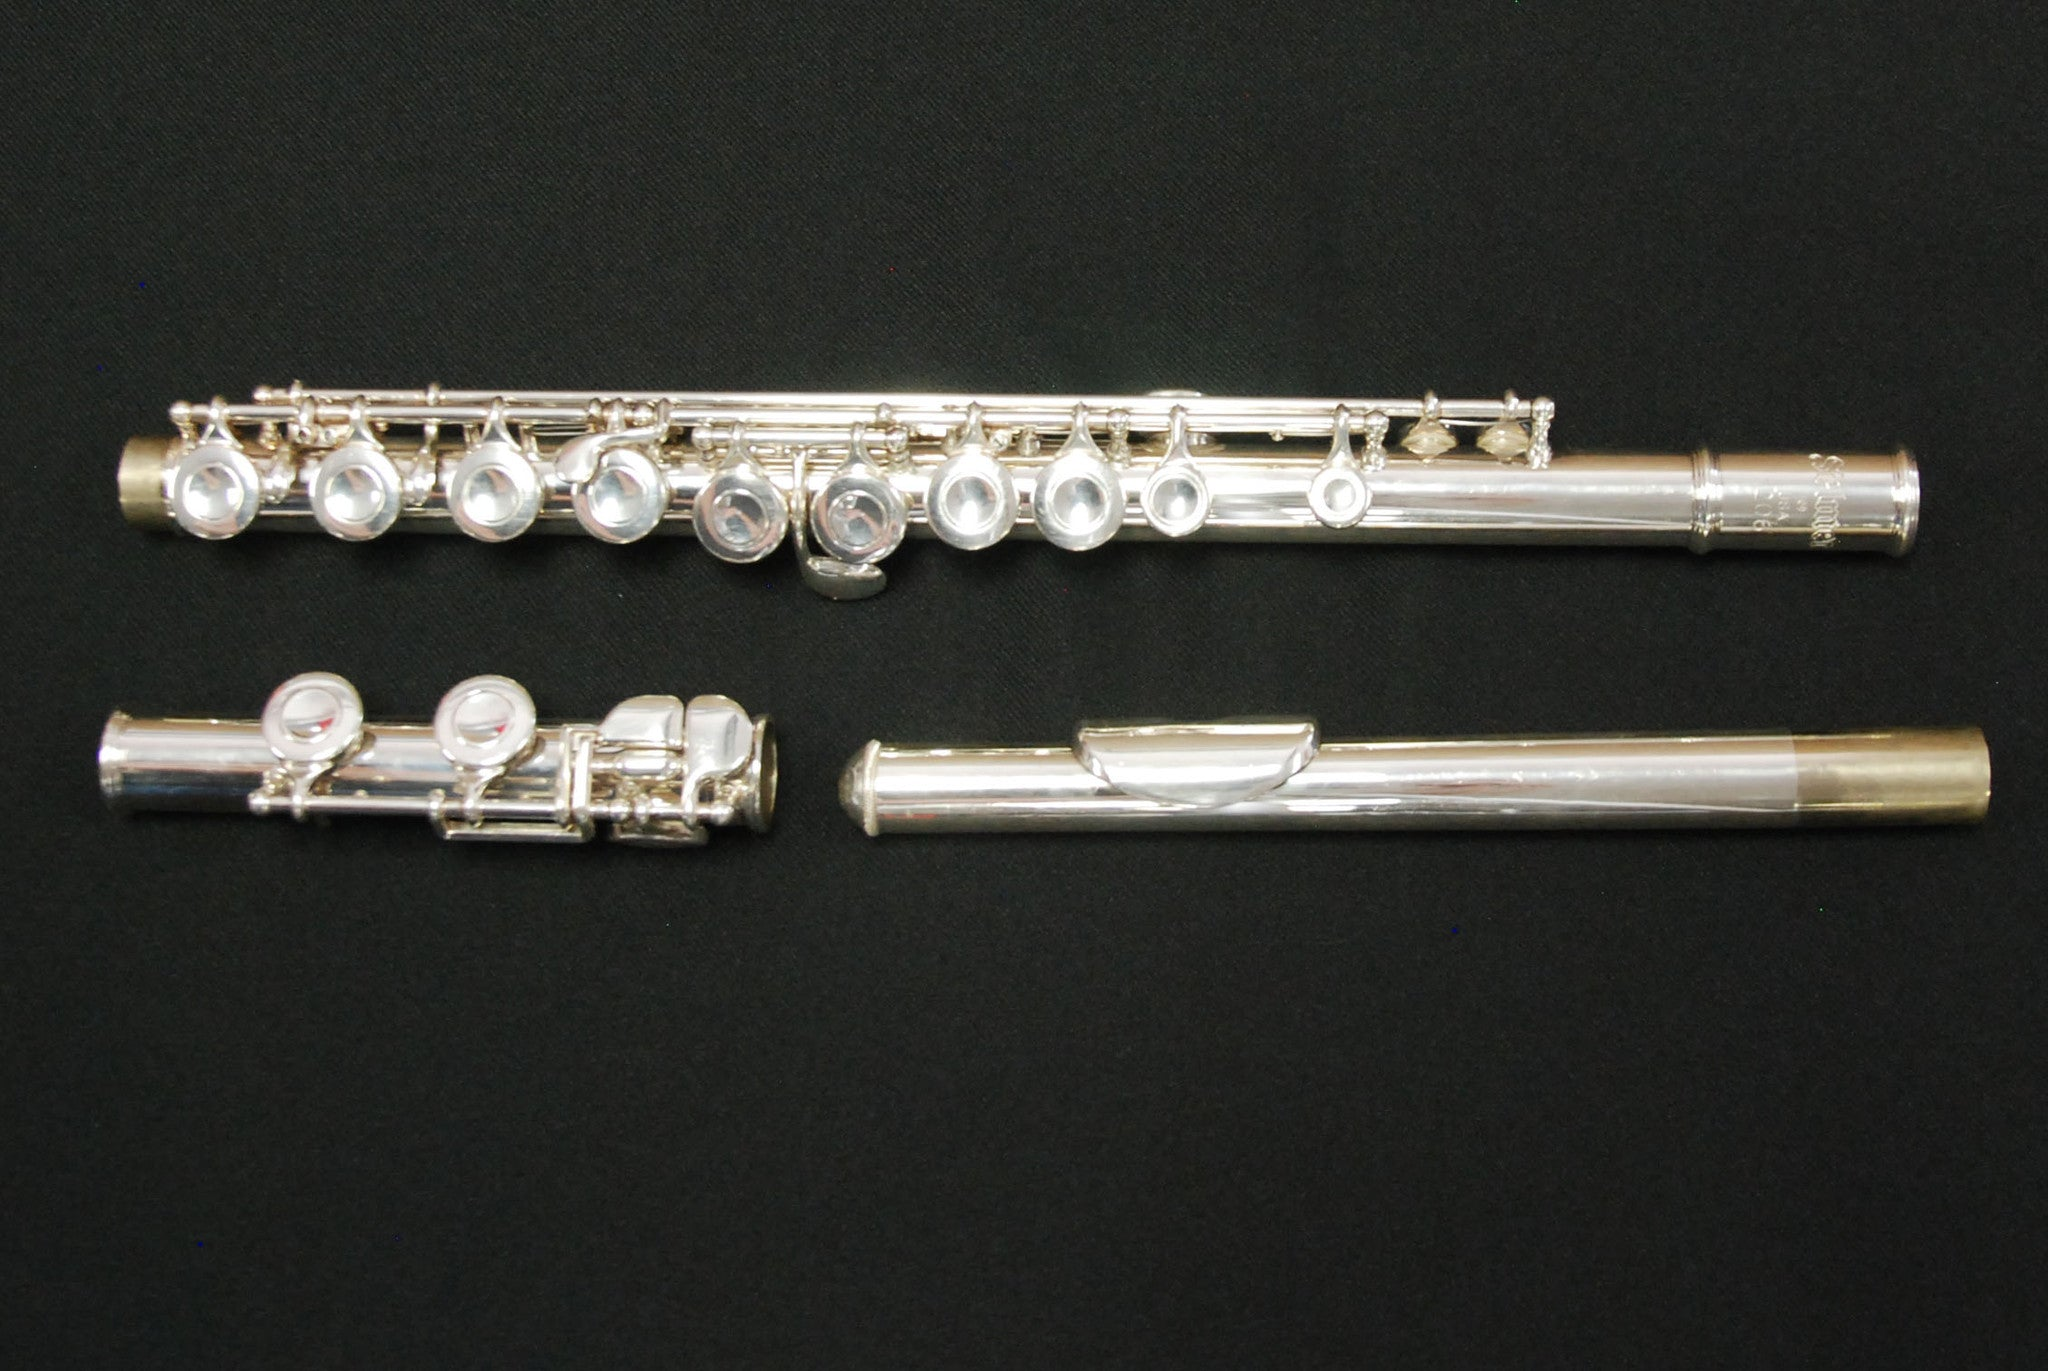 Shop online for Selmer 1206 Flute [3785547] today.  Now available for purchase from Midlothian Music of Orland Park, Illinois, USA